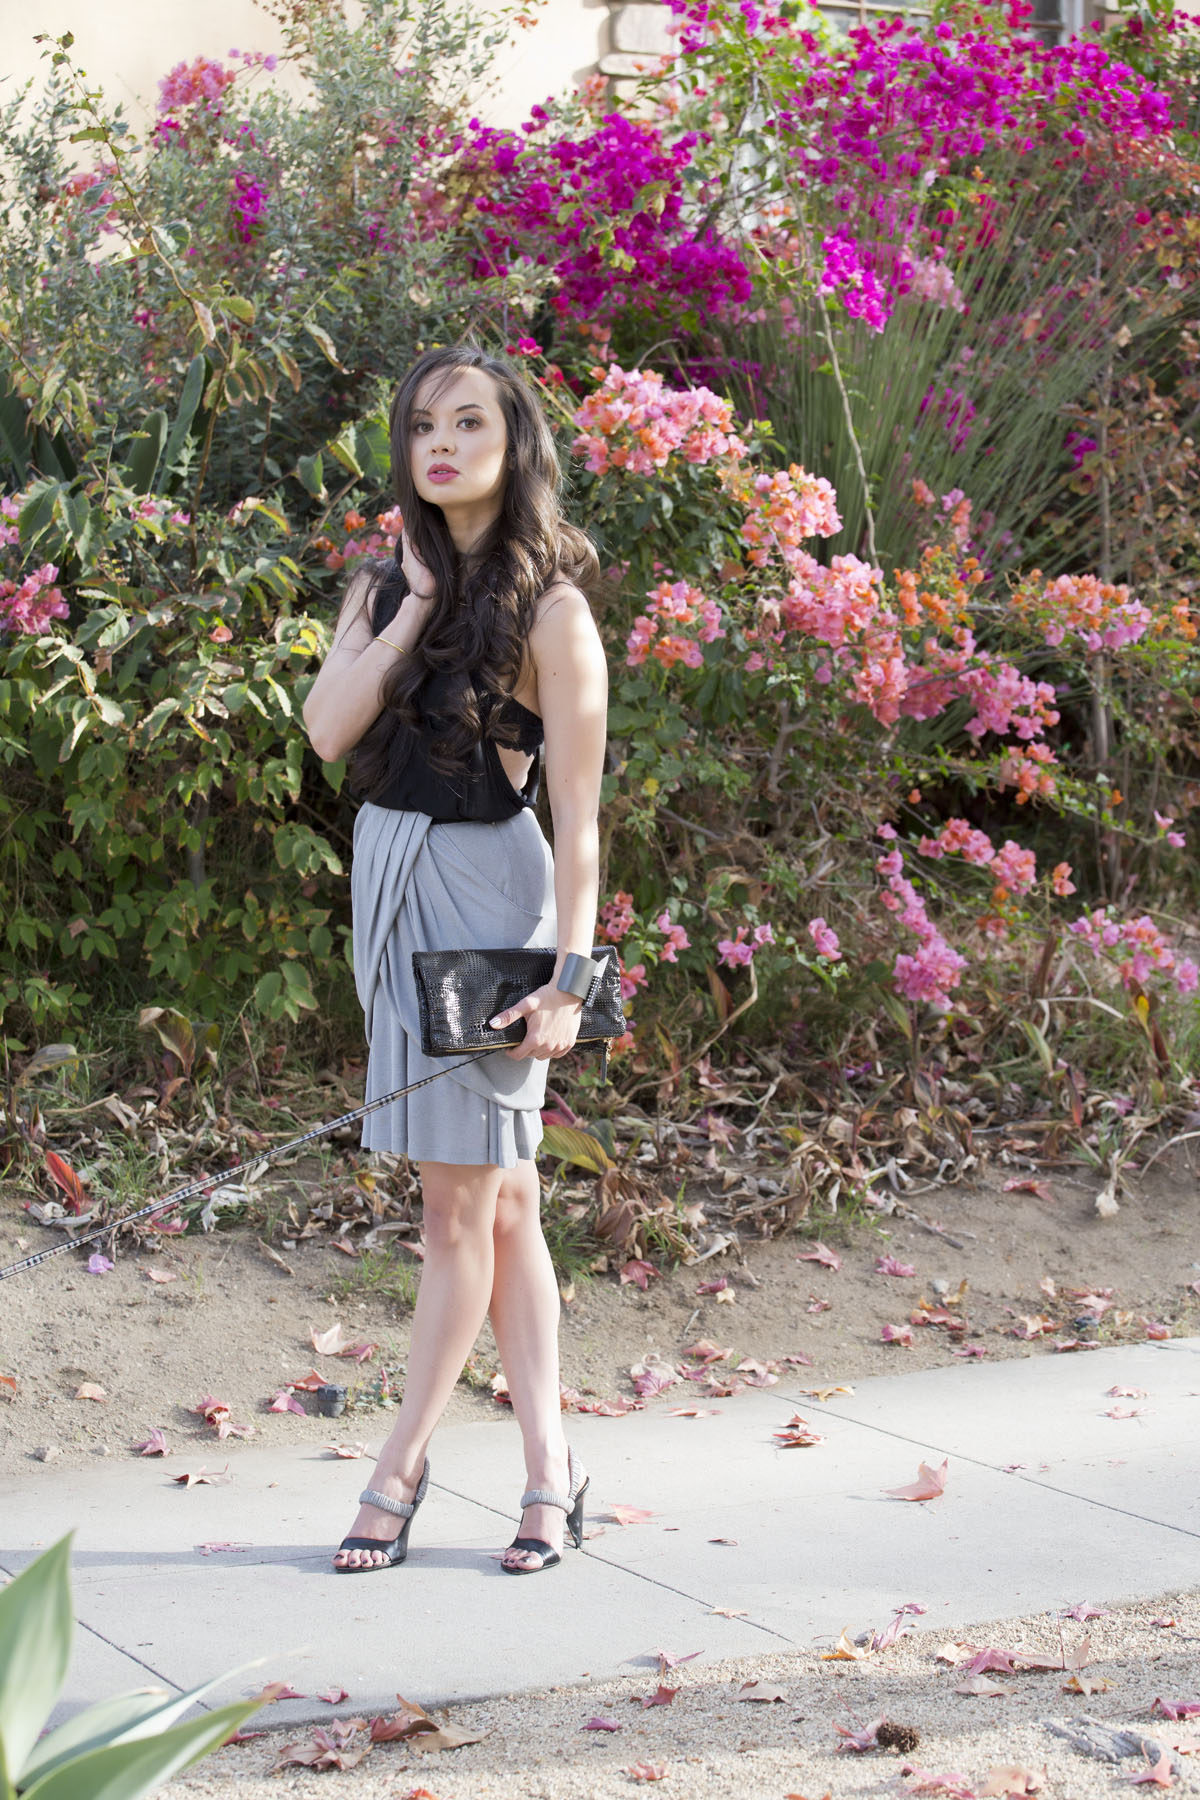 grey draped skirt, camille newbern, ootd, ootn, fashion blog, fashion blogger, eurasian models, eurasian actresses, the la survival guide, la survival guide, thelasurvivalguide, lasurvivalguide, michele lobosco, drybar, drybar cosmo, drybar blowout, long hair blowout, blushington, blushington makeup, enamel diction, enamel diction nail art, los angeles nail art, papillon, la shopping, los angeles shopping, modeling la, modeling los angeles, alexander wang tank, alexander wang skirt, wang tank, wang skirt, prada sandals, prada heels, prada shoes, black leather clutch, black clare vivier clutch, clare vivier clutch, kelly wearstler, kelly wearstler jewelry, kelly wearstler cuff, xiv karats necklace, xiv karats jewelry